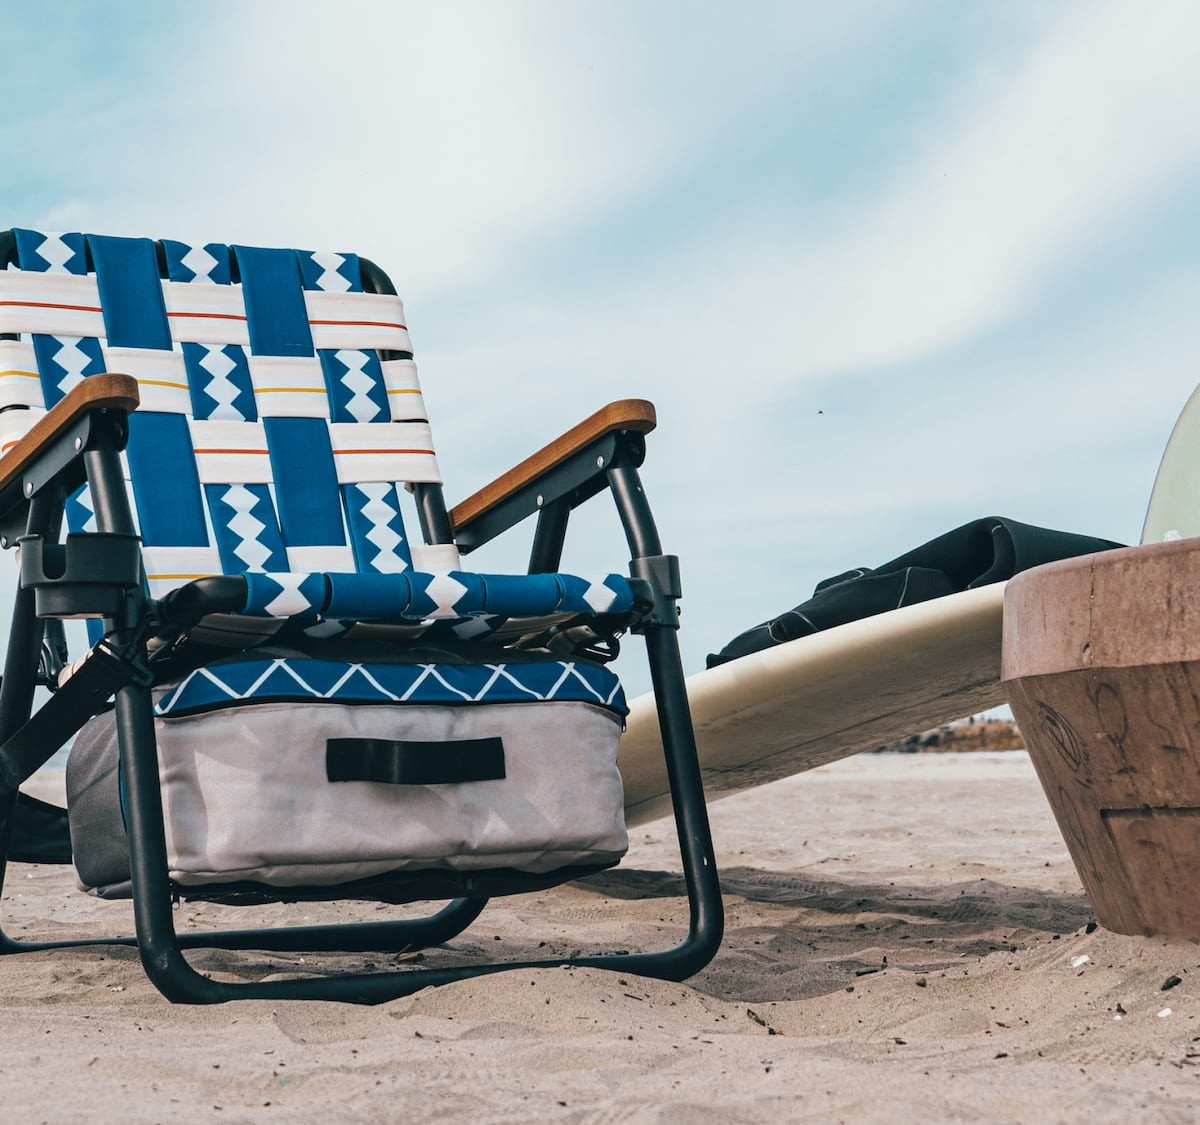 PARKIT Voyager Outdoor Recreation Chair is durable enough for all your adventures